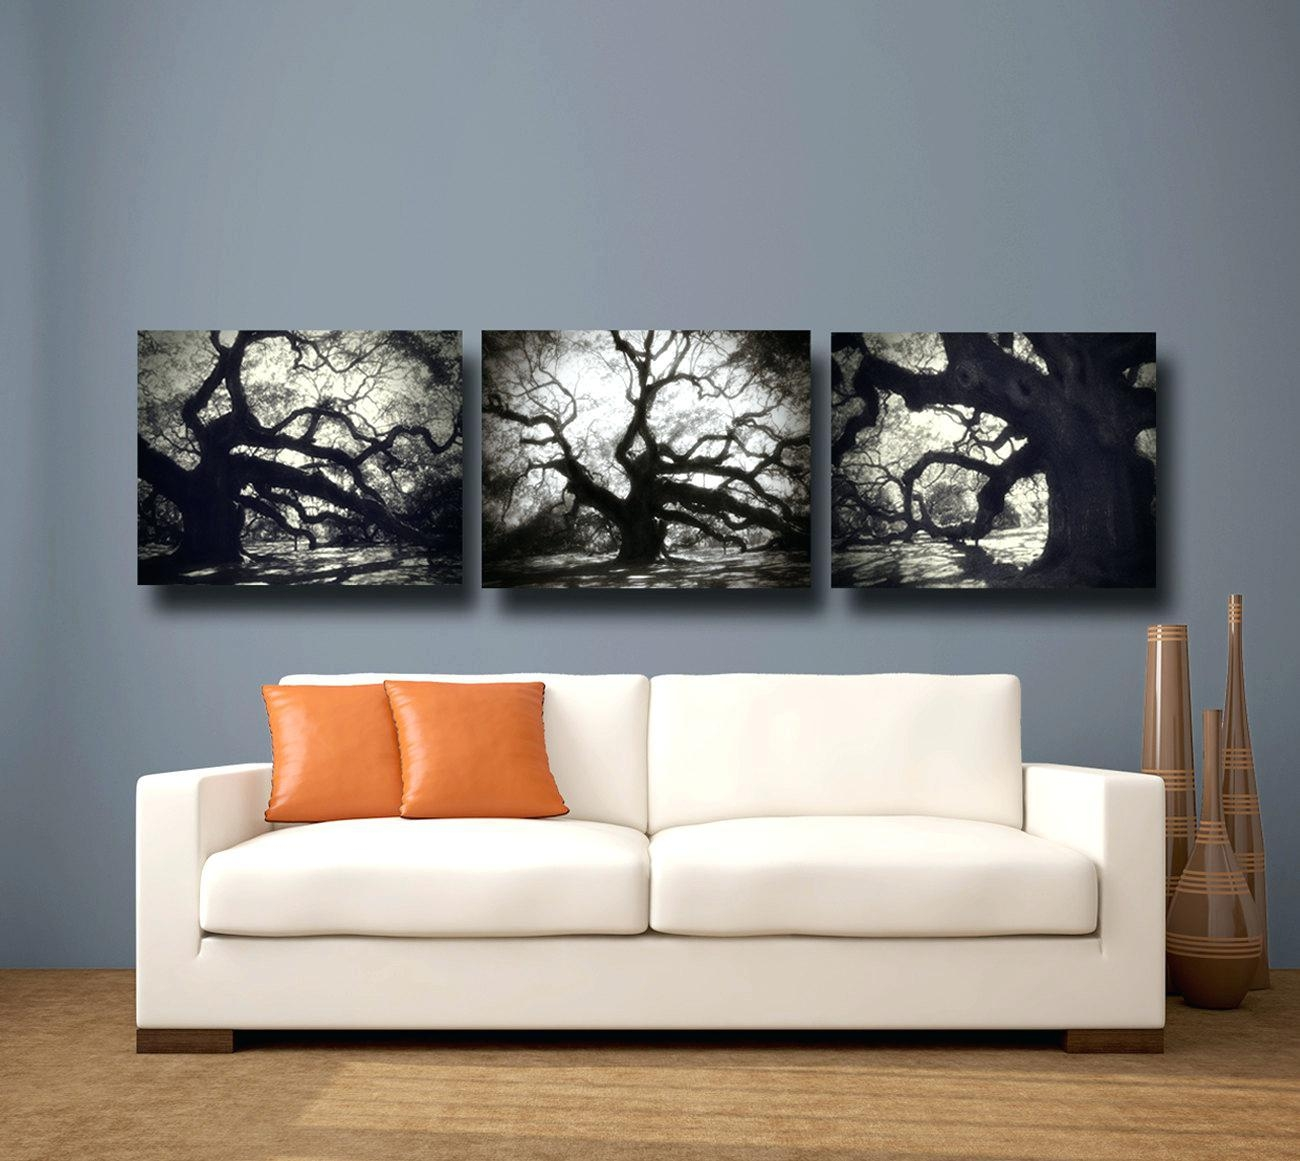 Large Canvas Prints For Living Room 20 Collection Of Extra Large Framed Wall Art Wall Art Ideas